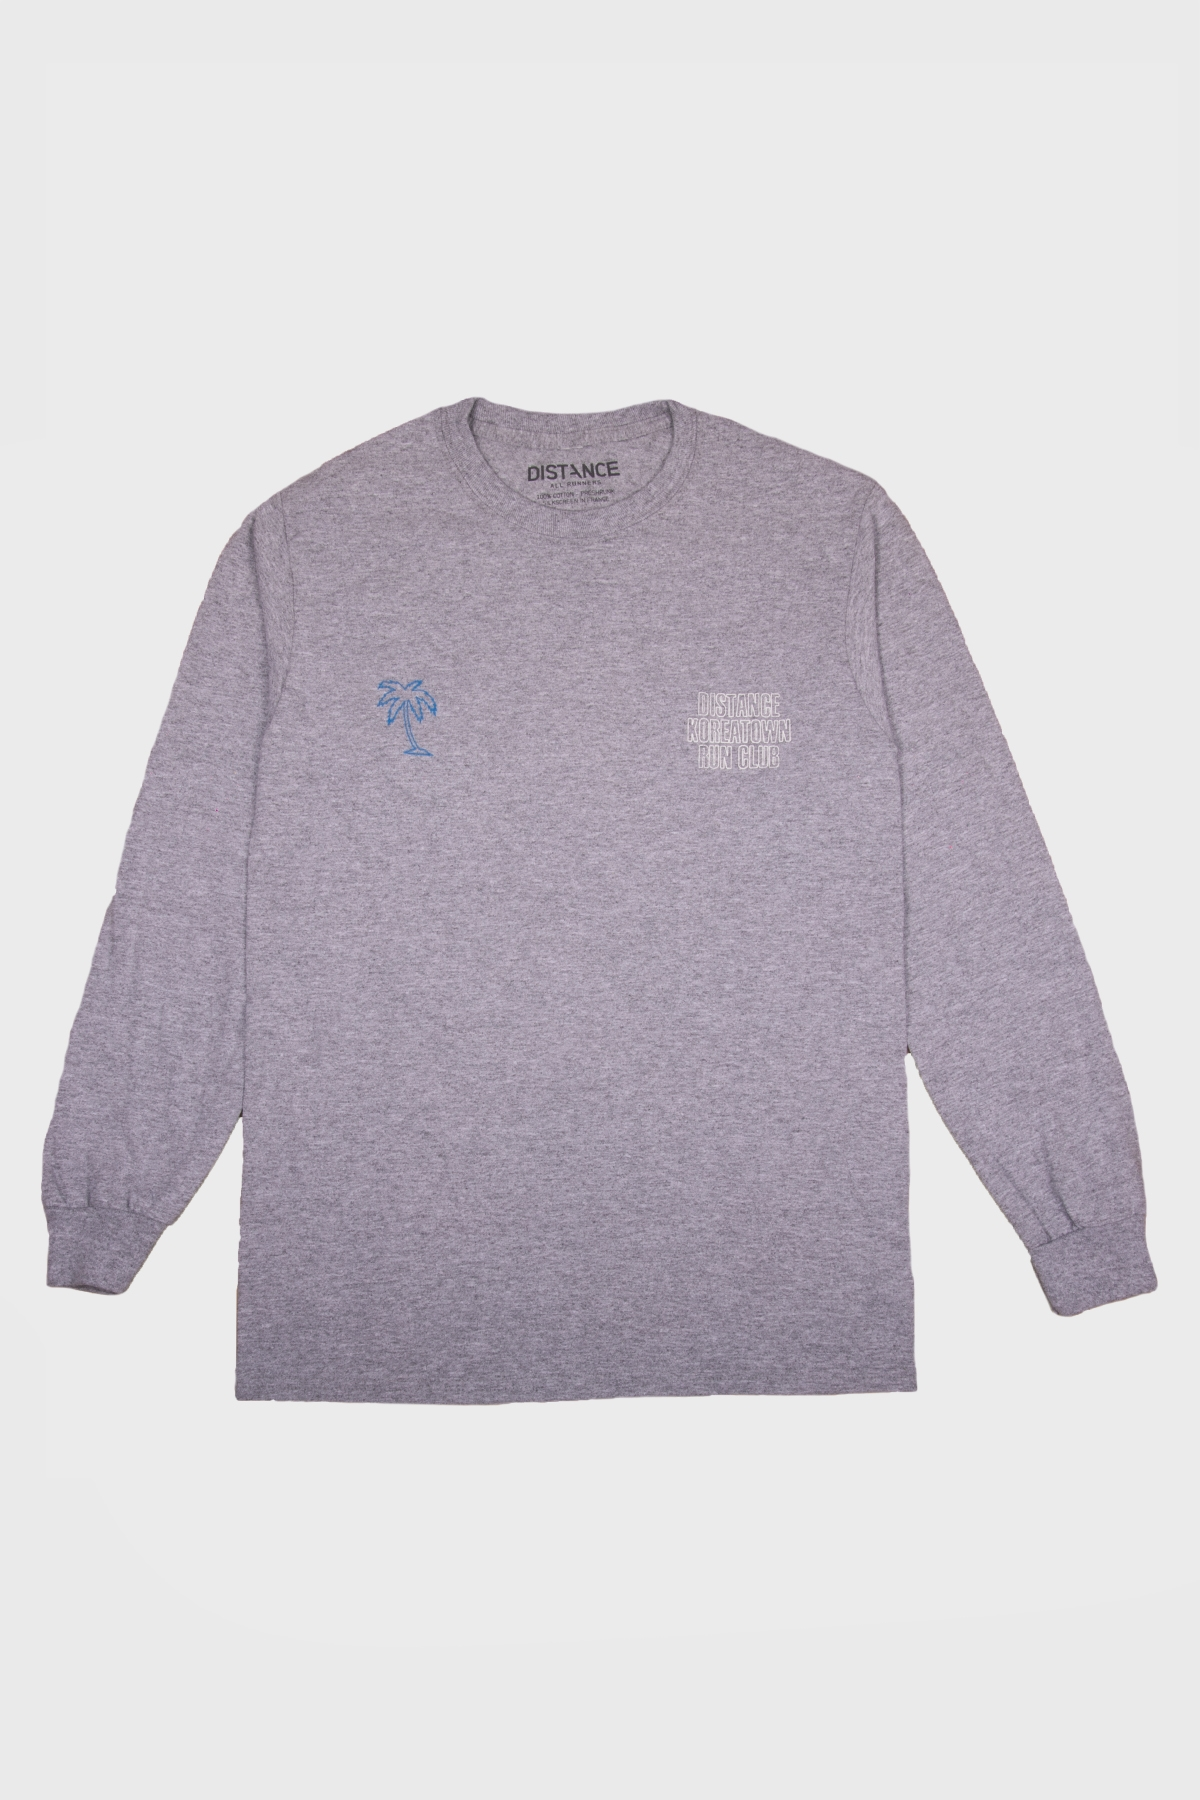 Distance x KRC - Long sleeve LA Marathon 2020 - Grey